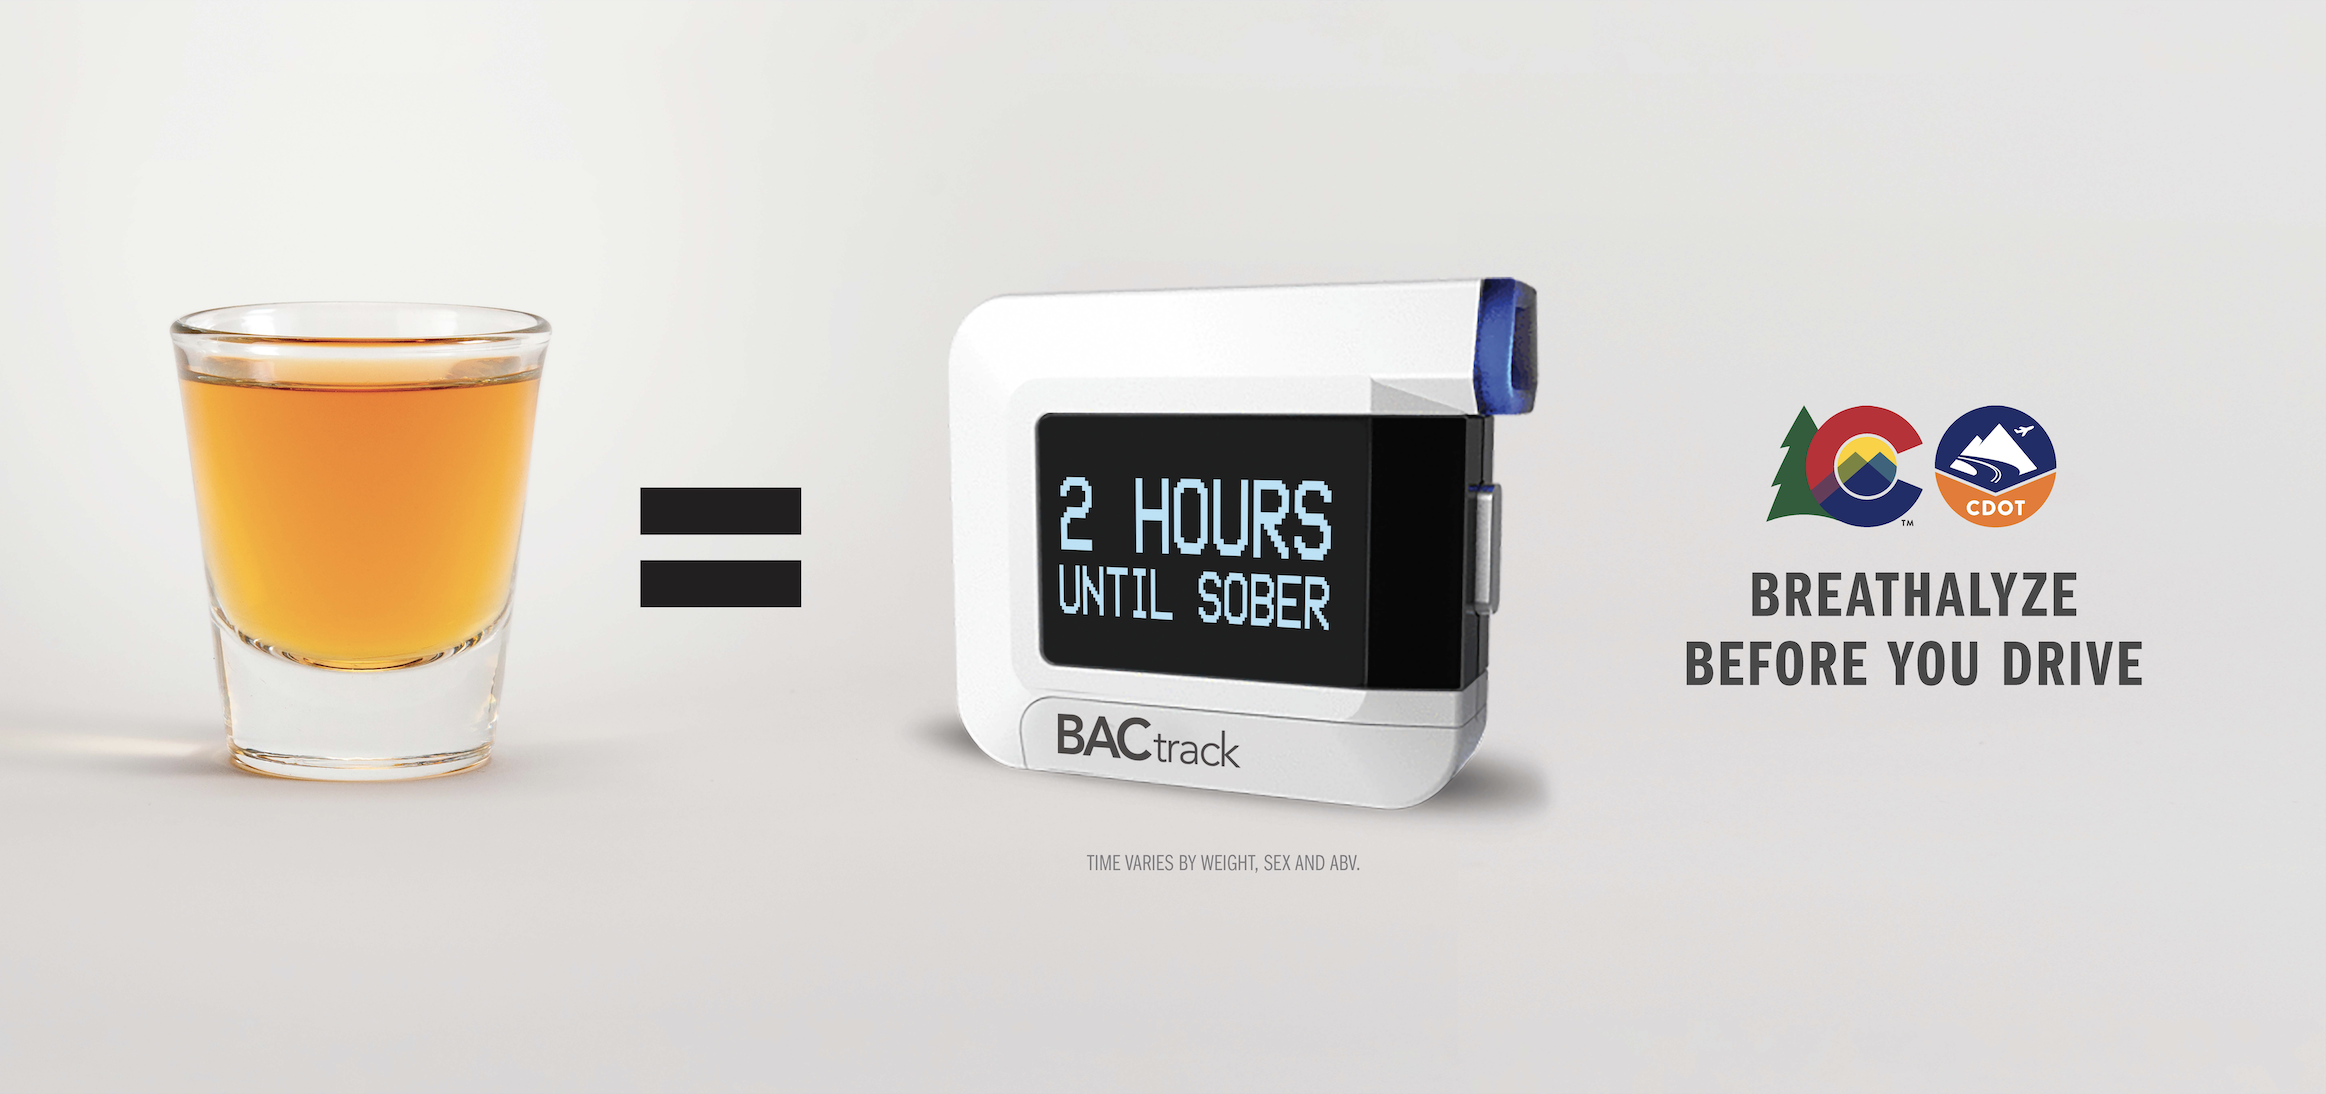 Breathalyze before you drive, one beer = 2 hours until sober